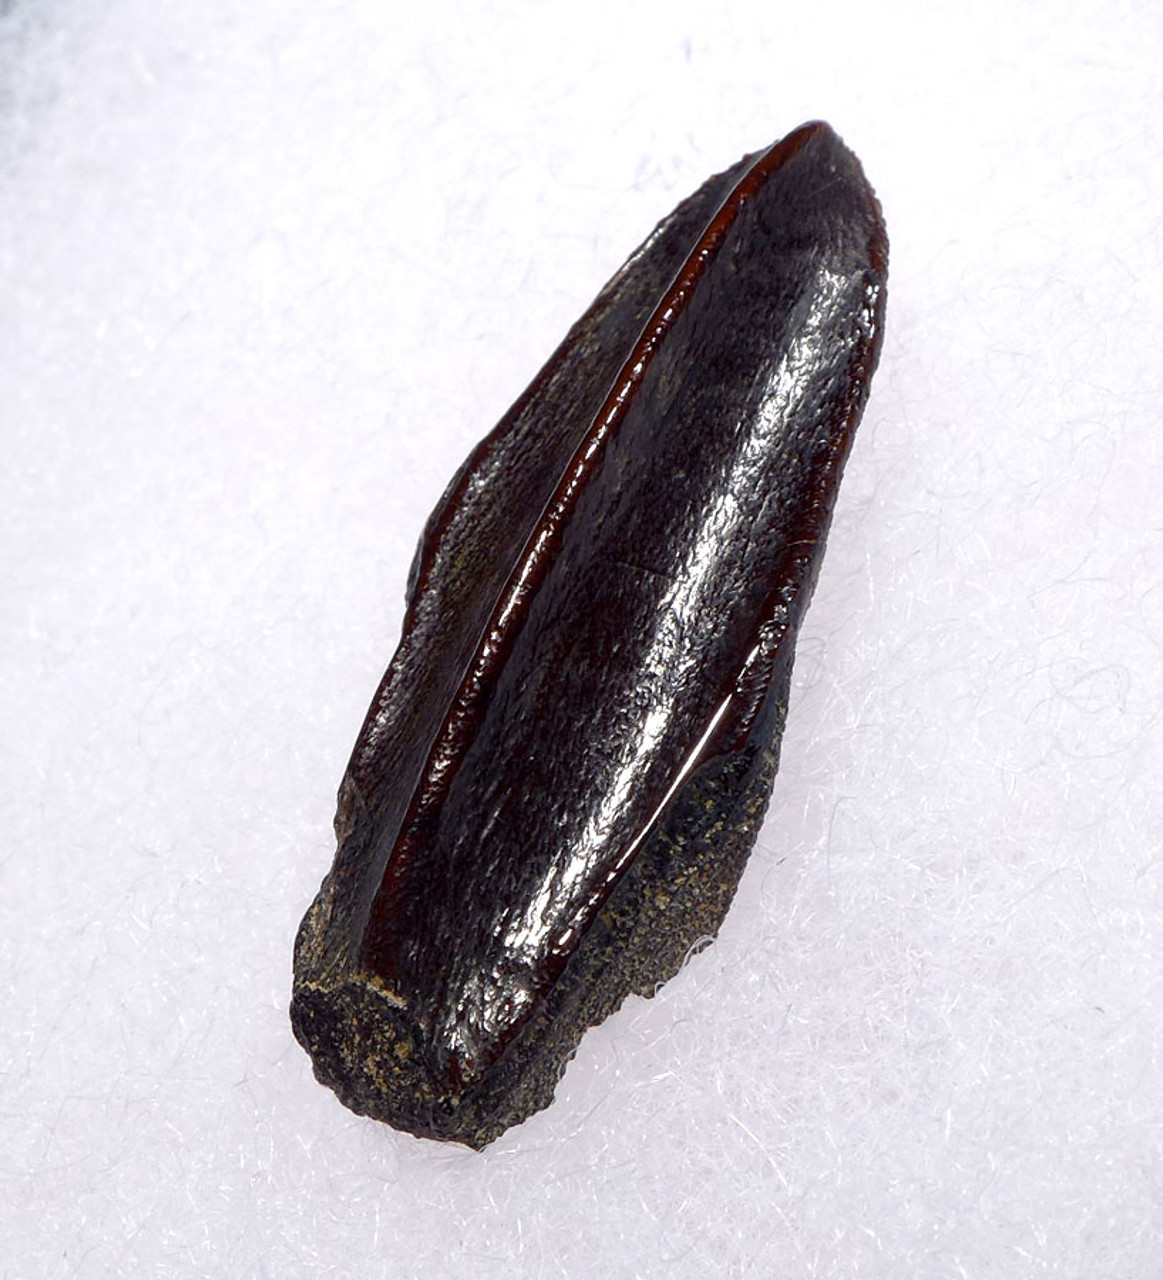 LARGE CHOICE FOSSIL HADROSAUR DINOSAUR TOOTH FROM THE LANCE FORMATION *DT7-017